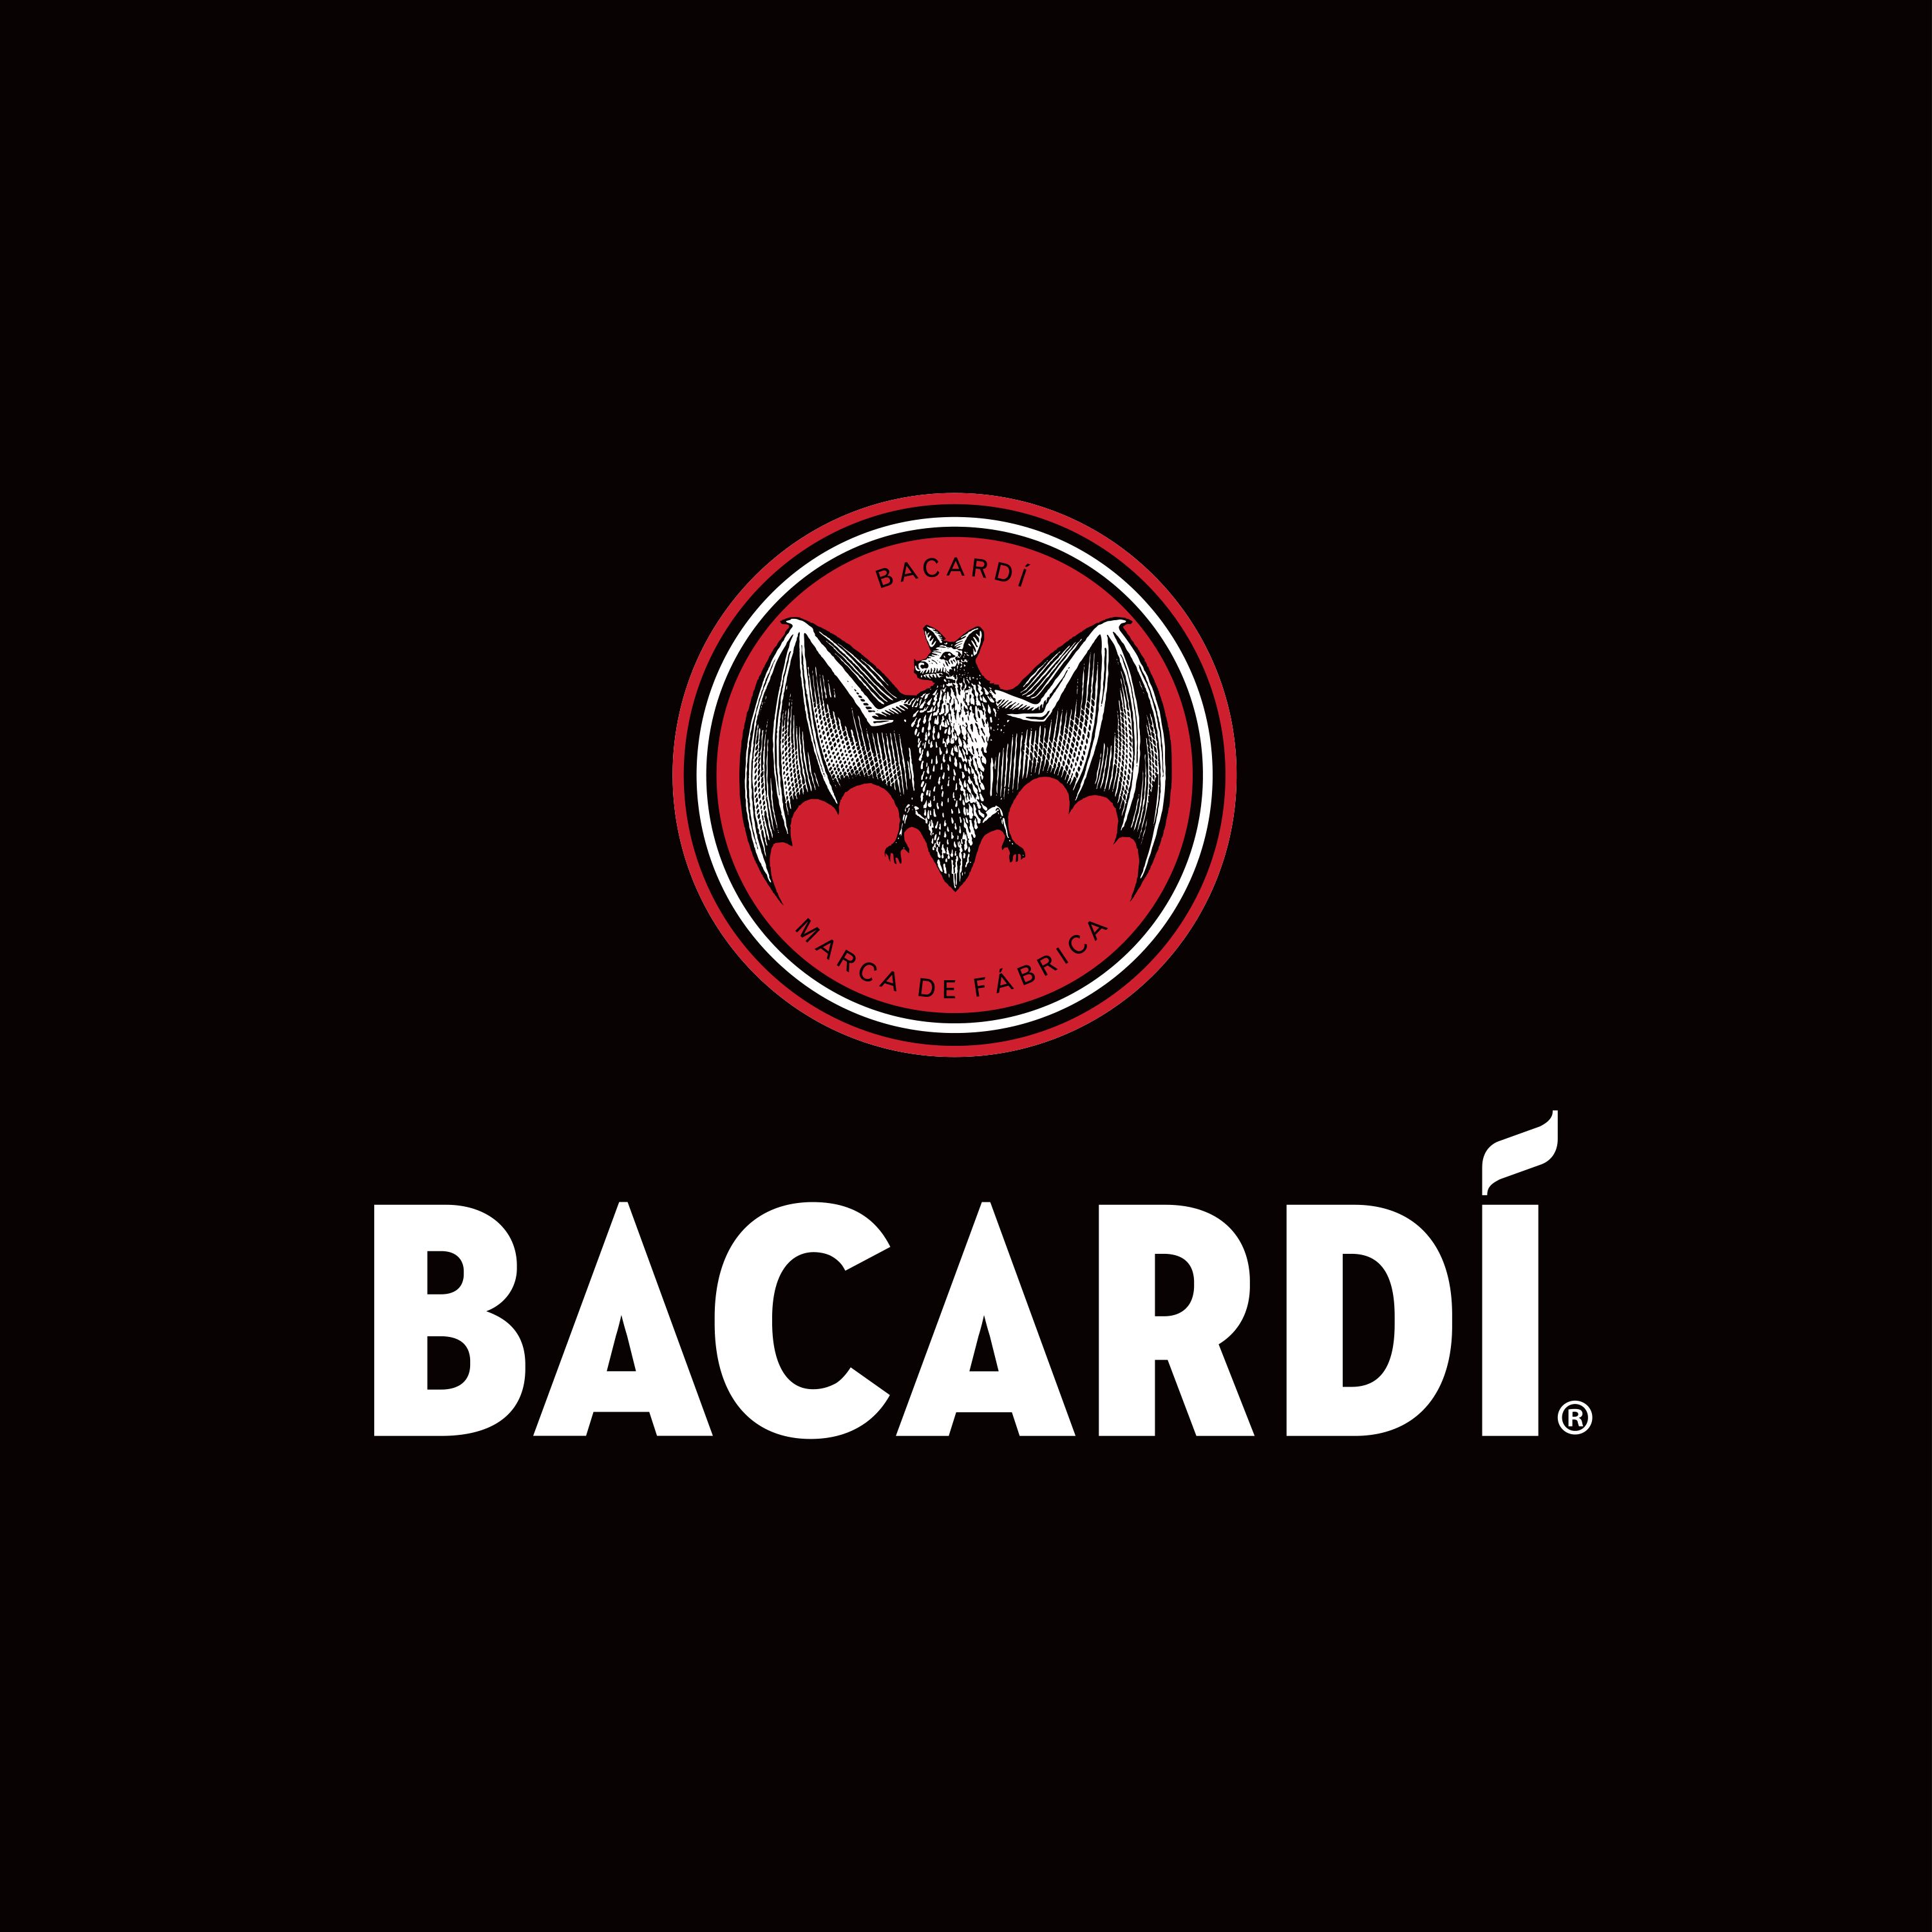 Bacardi Brown-Foreman Brands